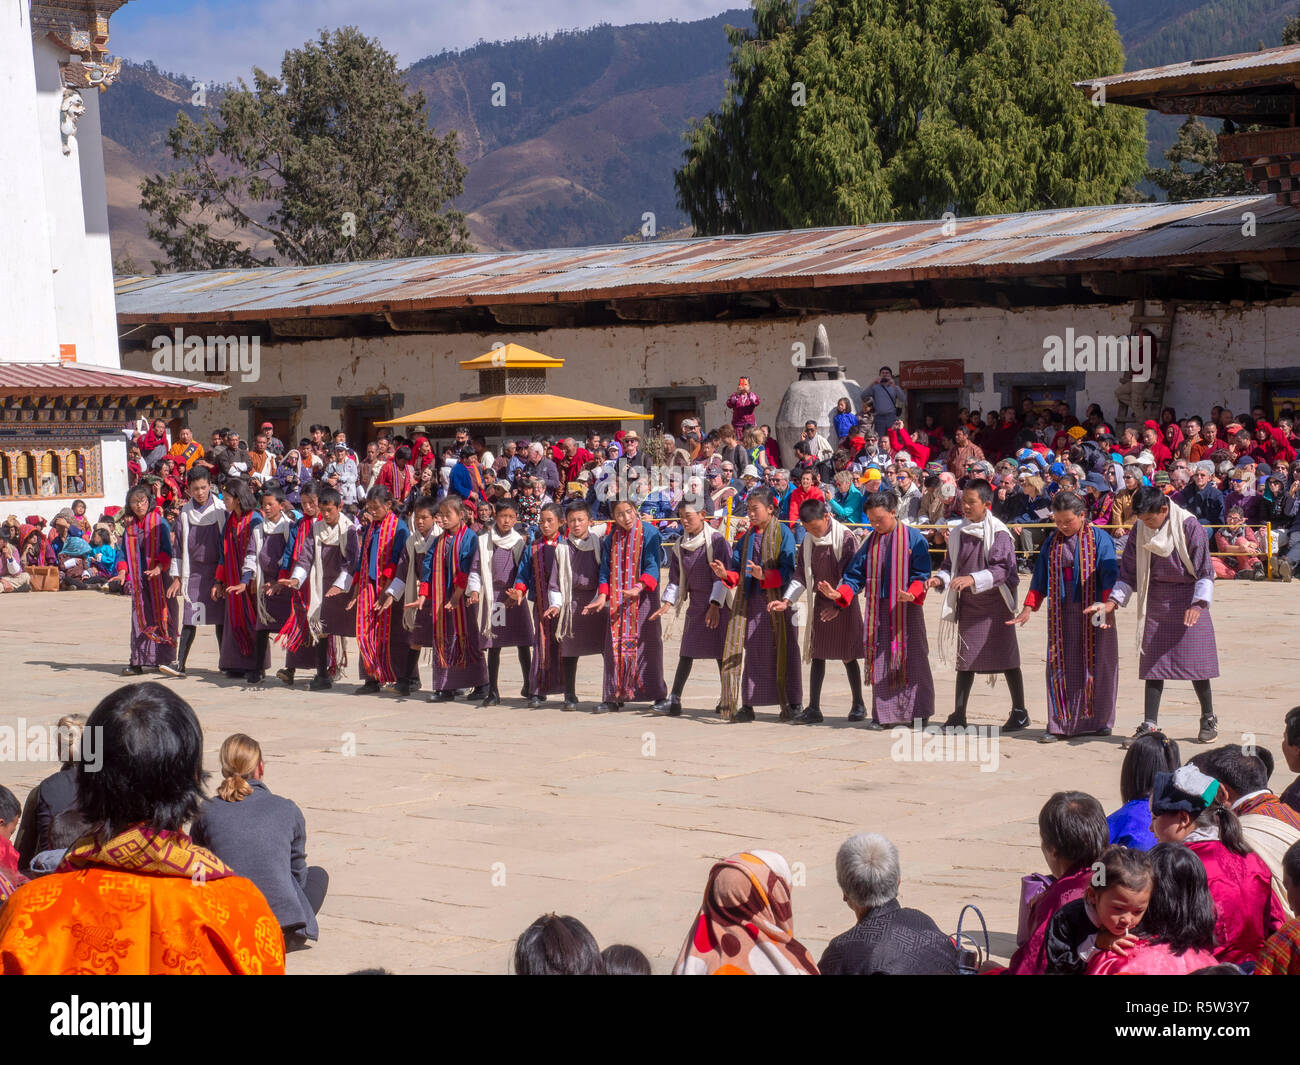 Local people watching dancers at the Black-necked Crane Festival in Gangtey, Bhutan - Stock Image